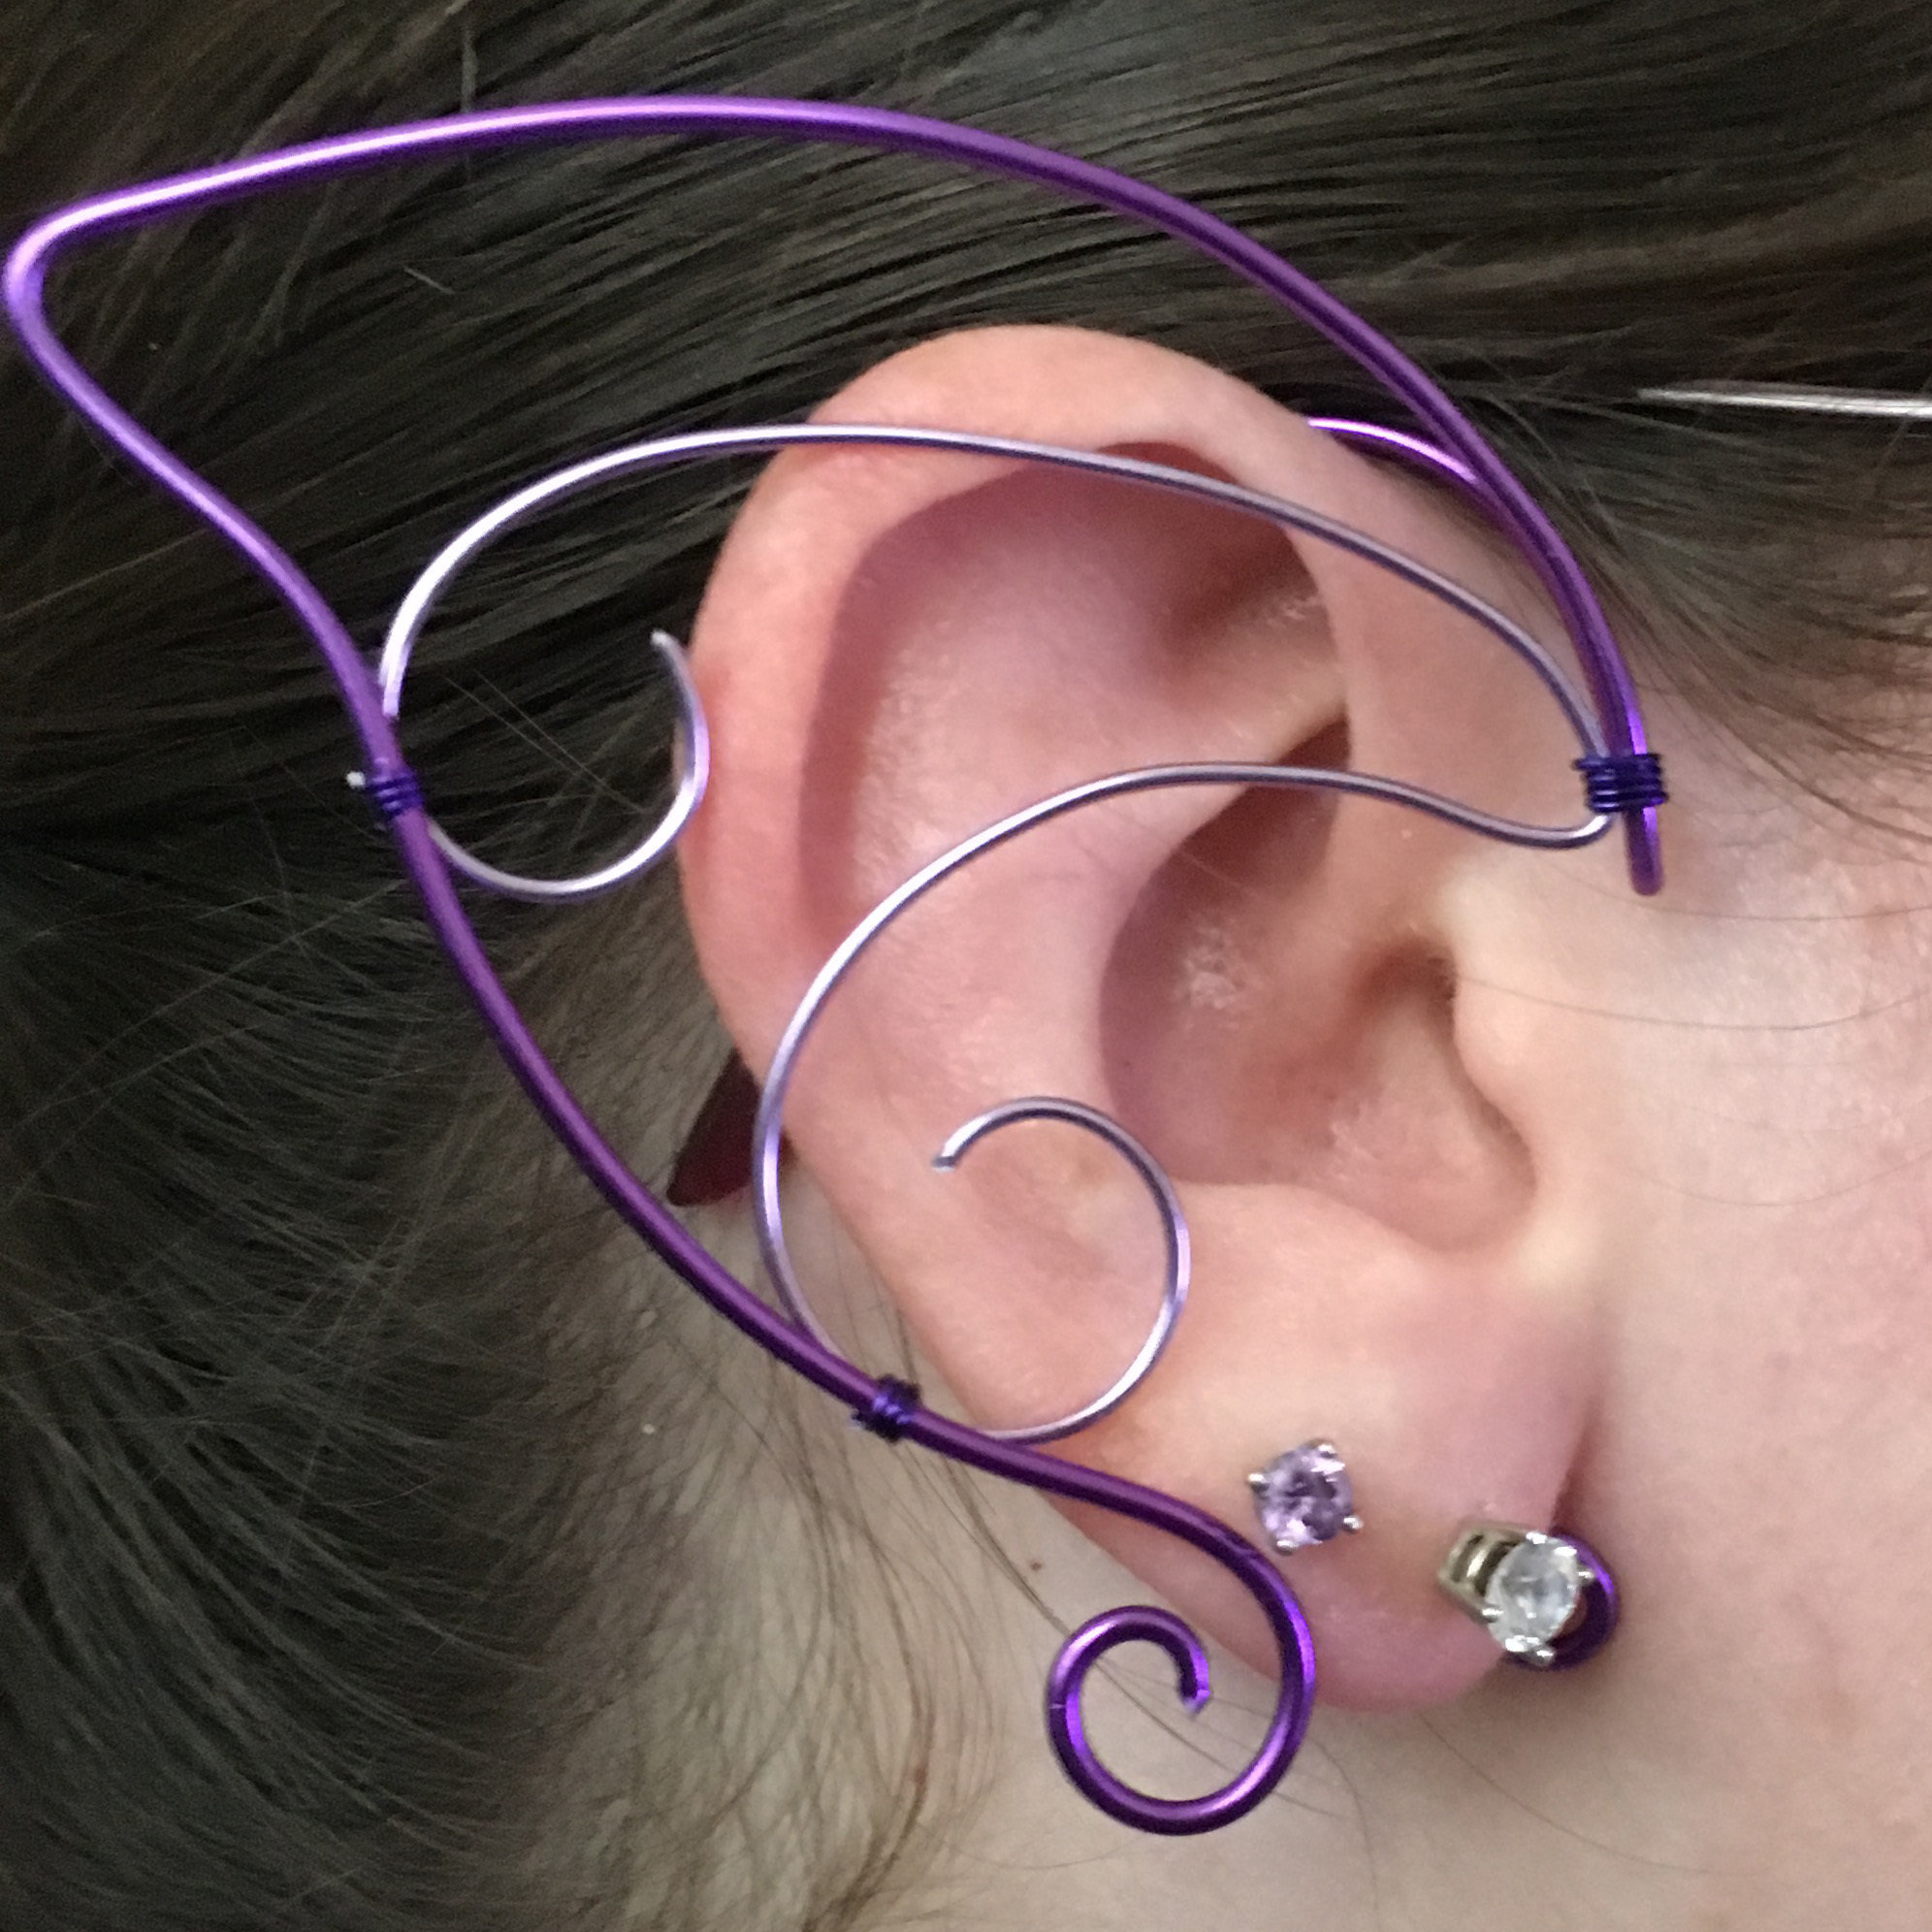 Elf Ear Cuff - Purple and Lavender EC014